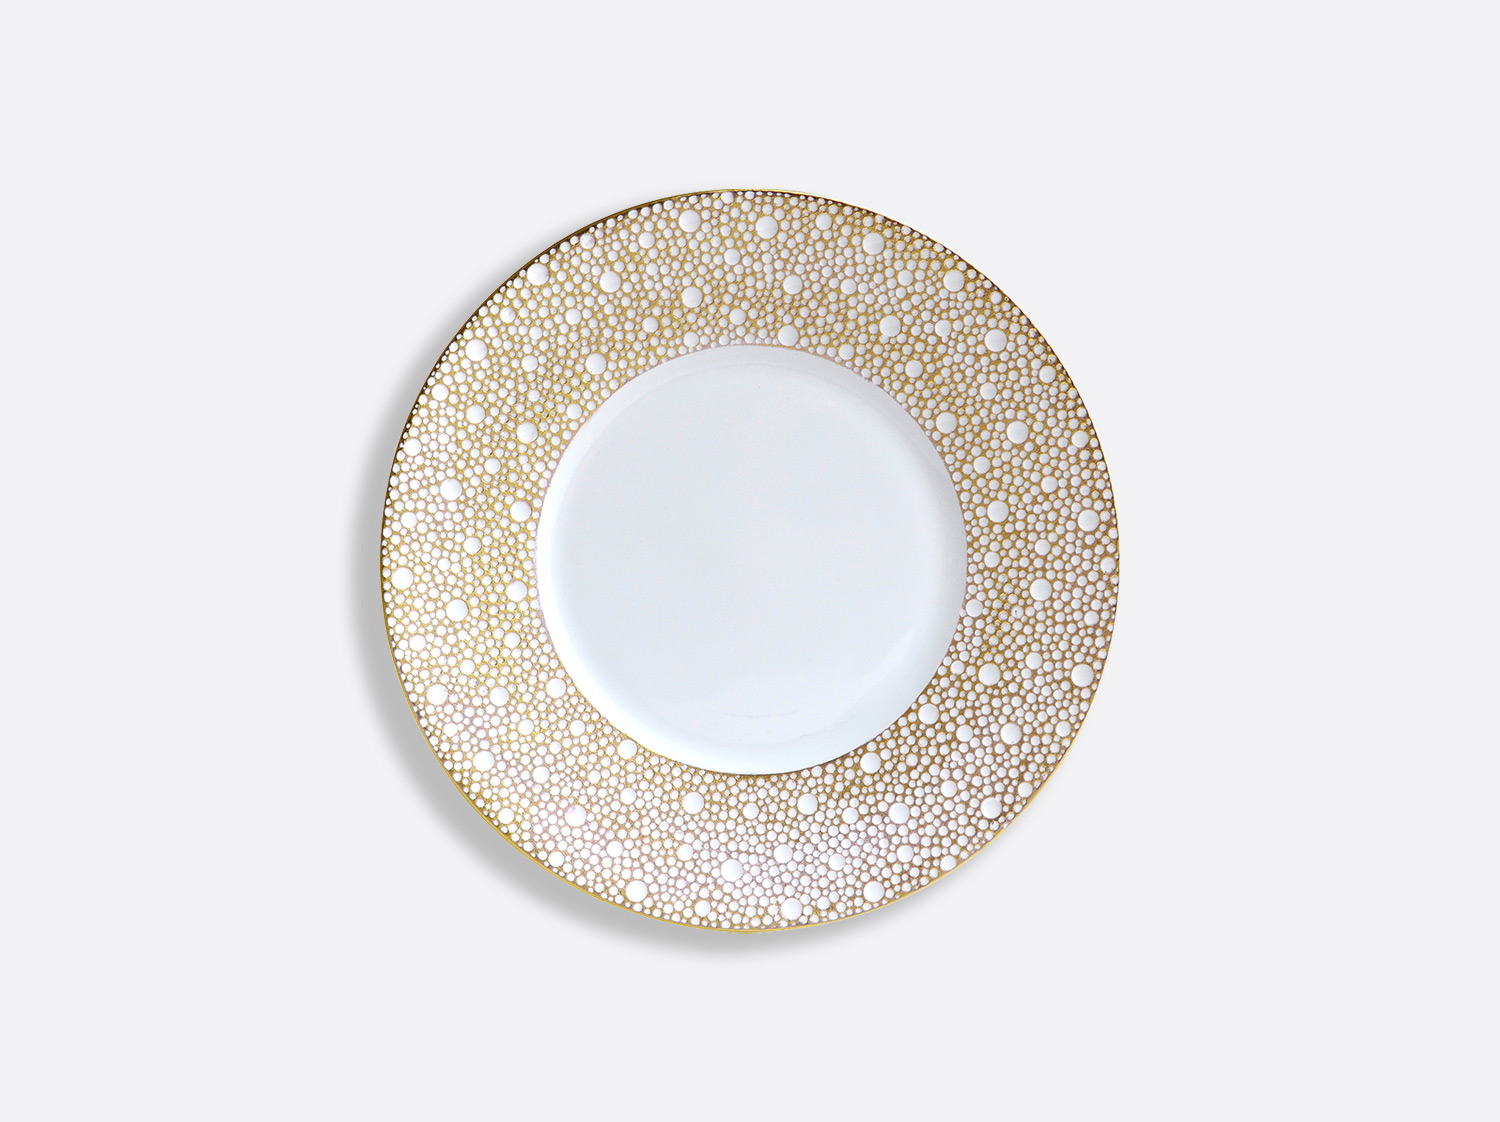 Assiette plate 16 cm en porcelaine de la collection Ecume Mordoré Bernardaud